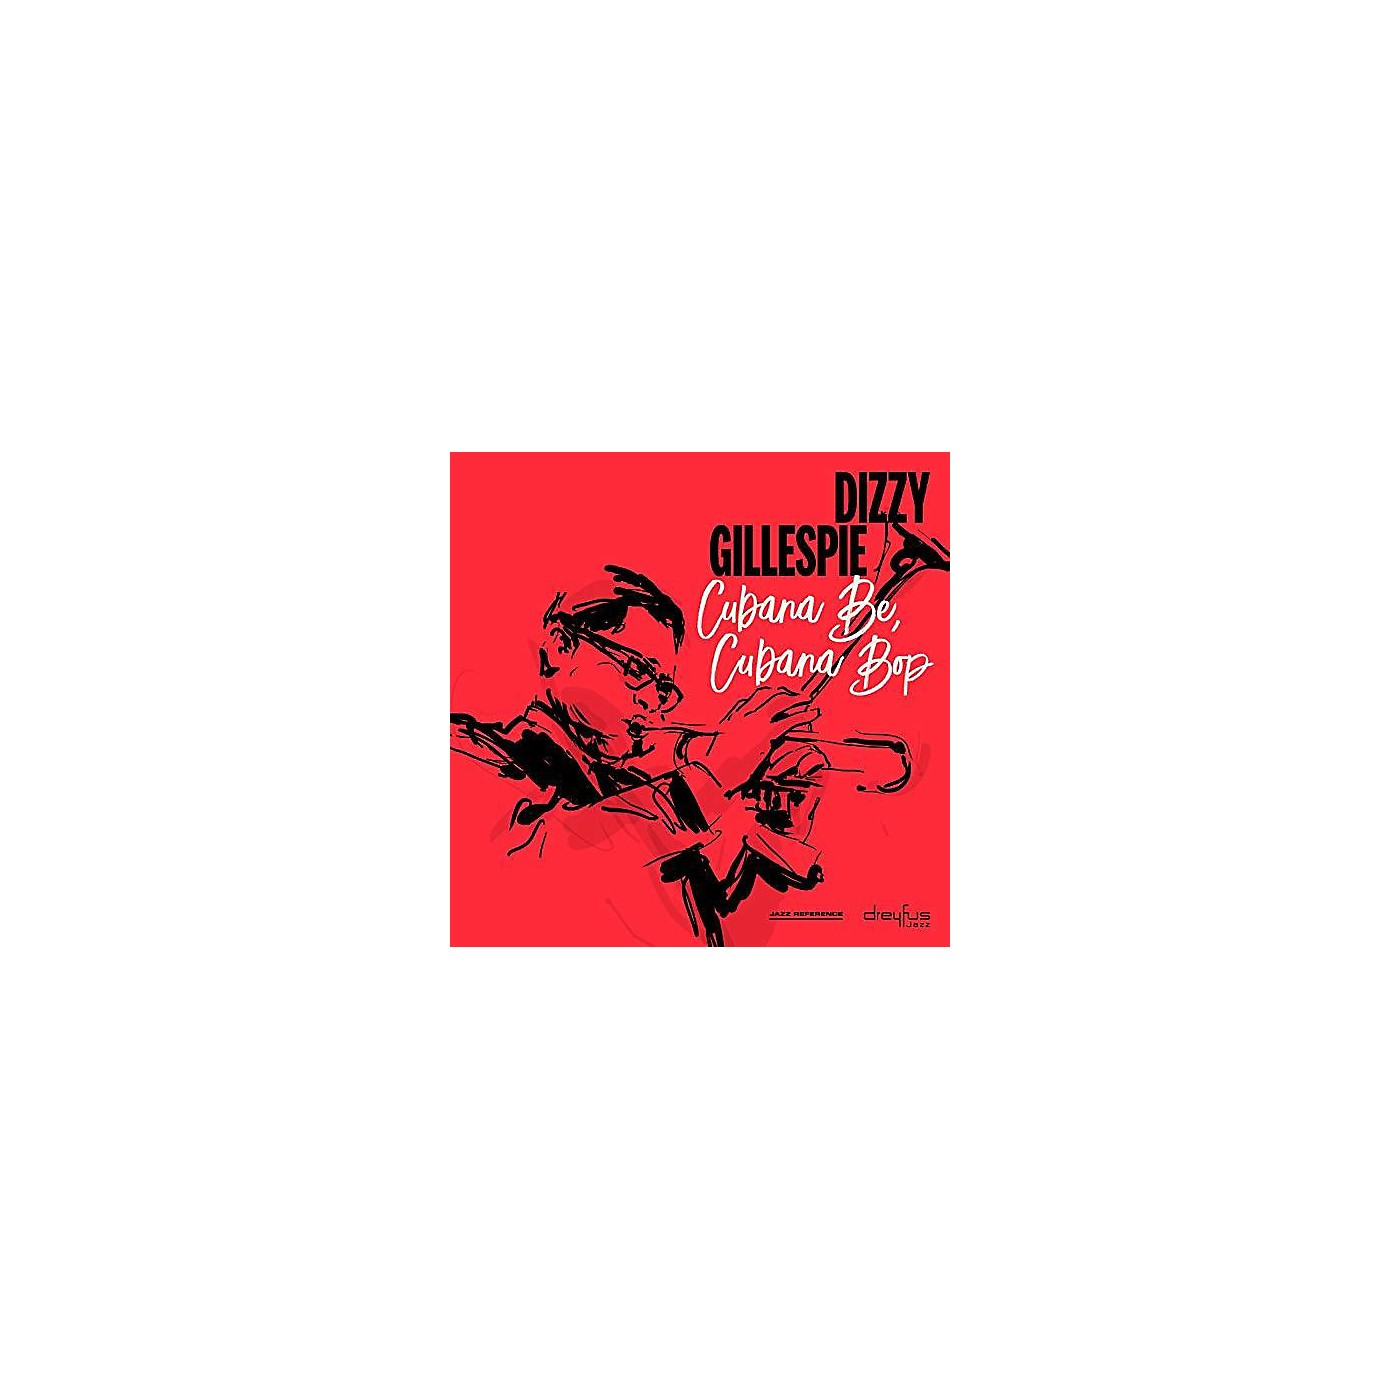 Alliance Dizzy Gillespie - Cubana Be Cubana Bop thumbnail